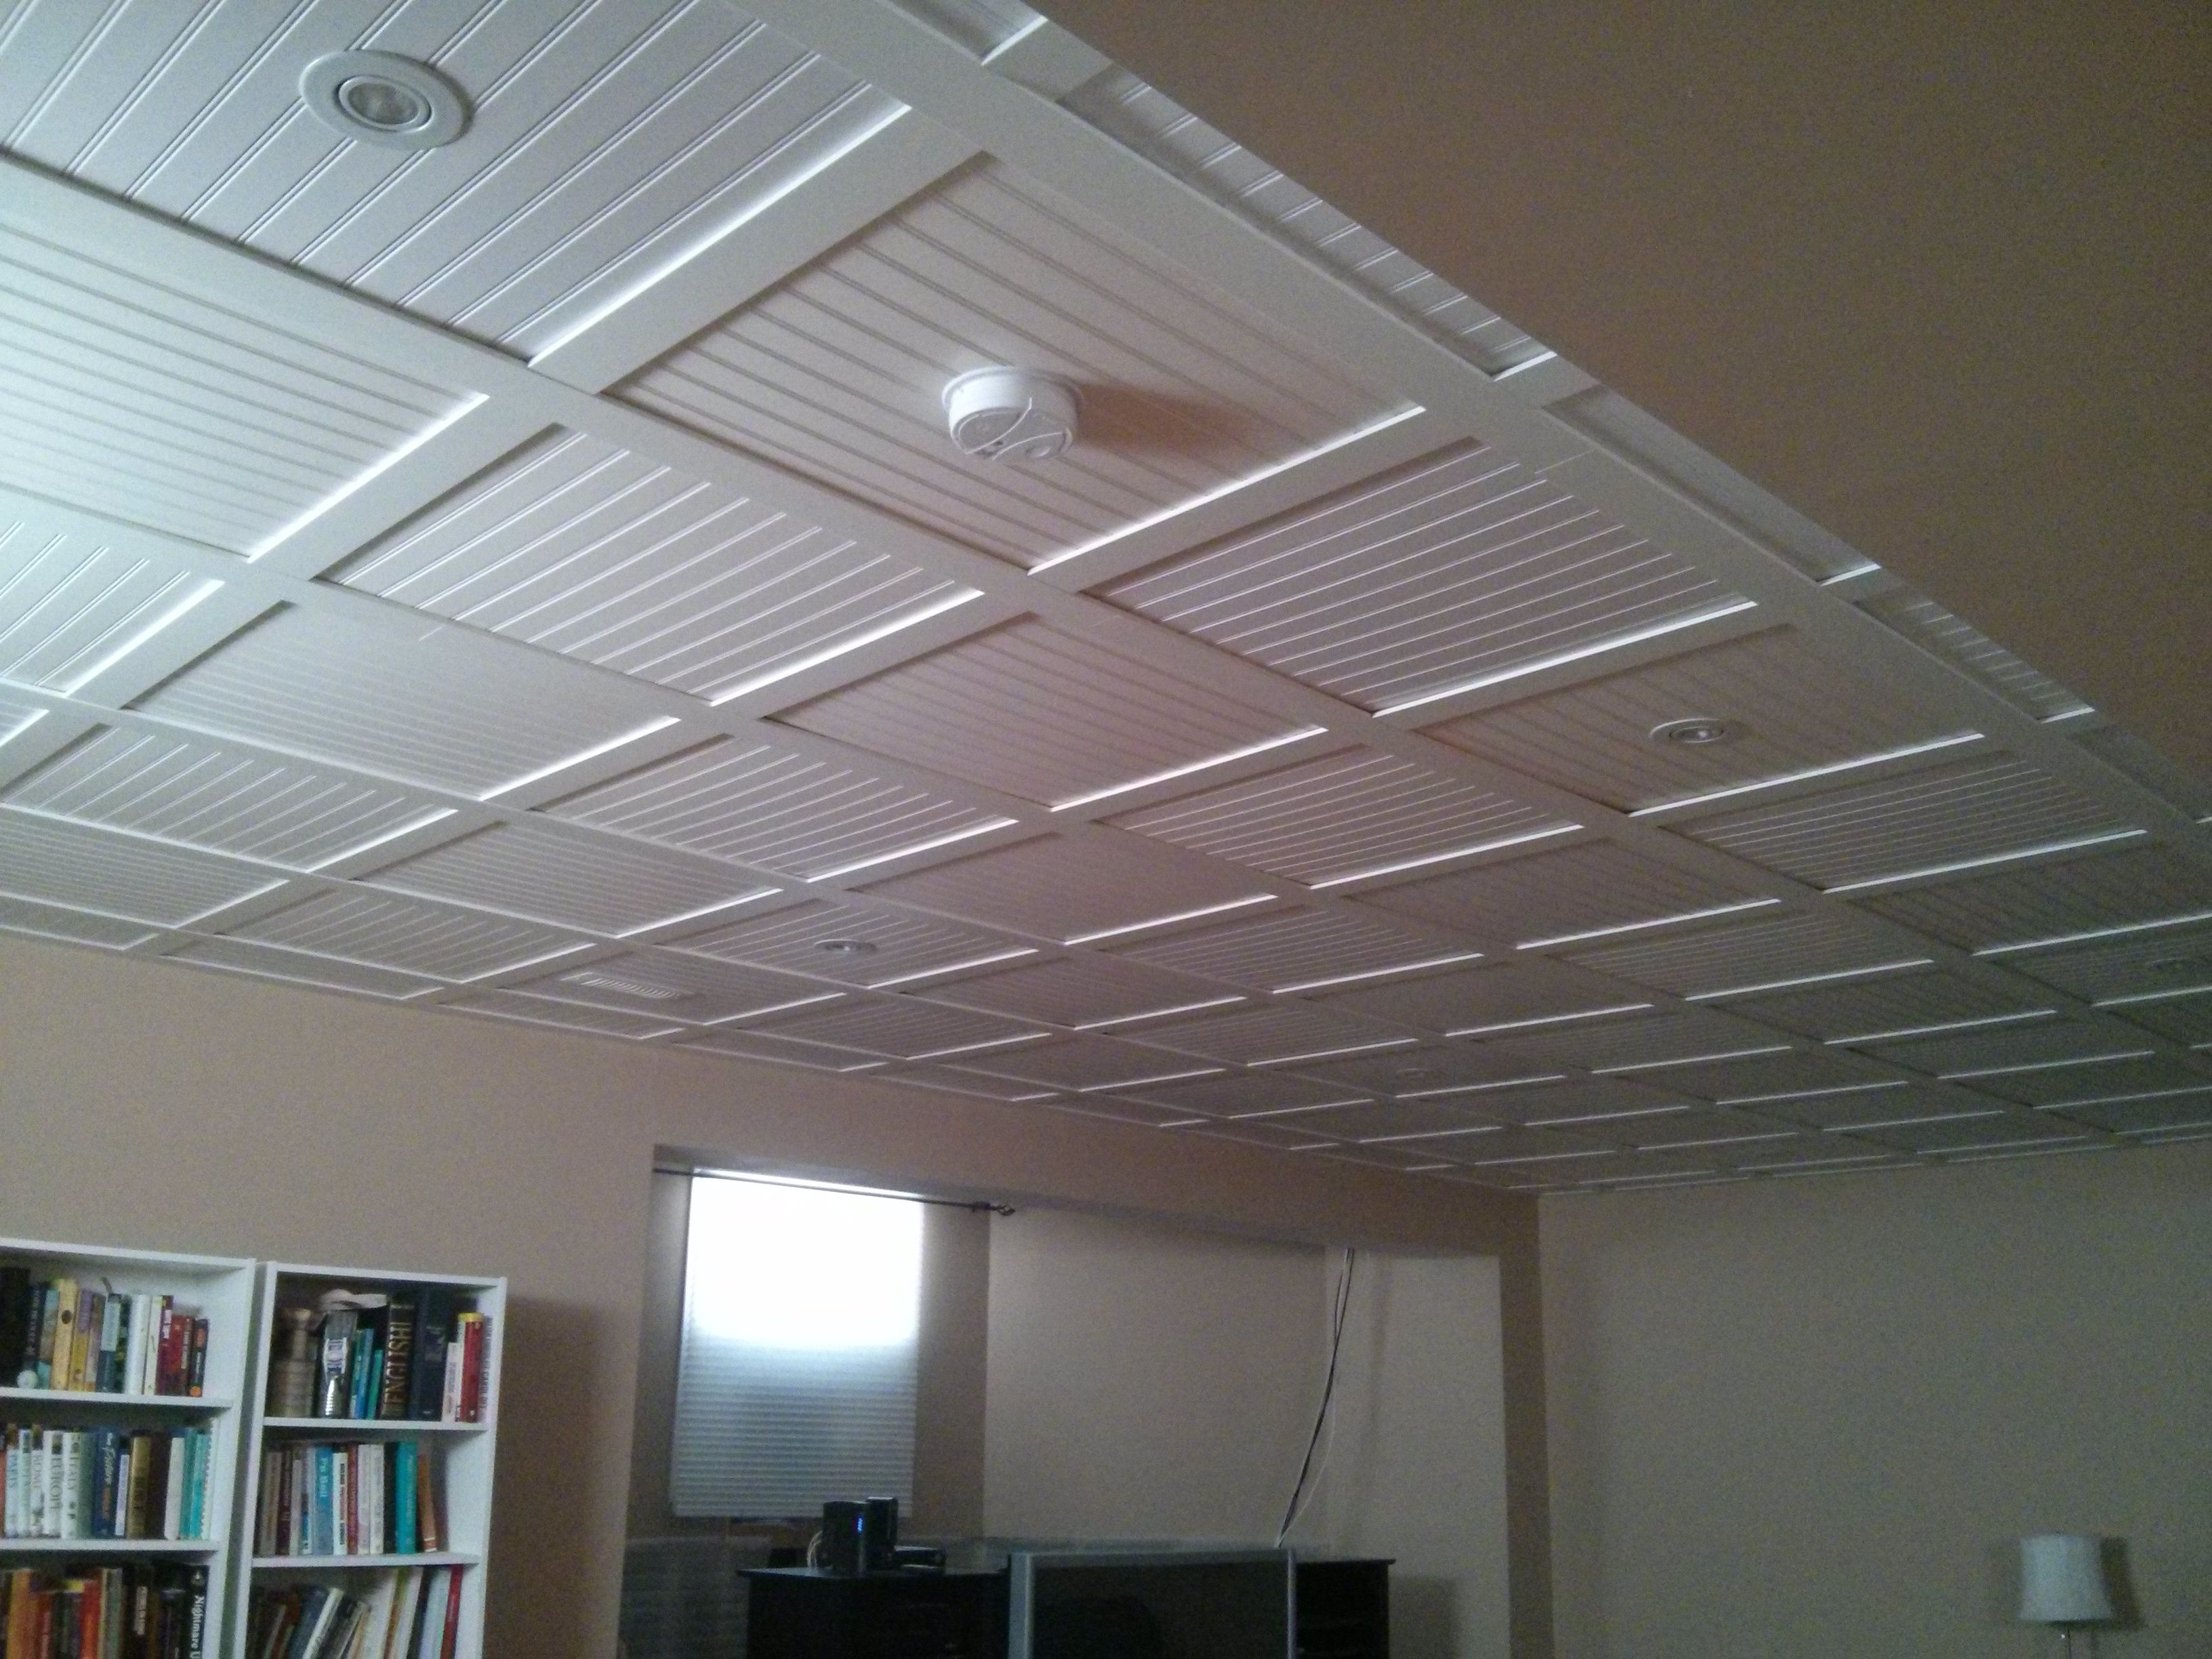 T bar ceiling tiles vancouver theteenline t bar ceiling tiles vancouver best 2018 dailygadgetfo Gallery